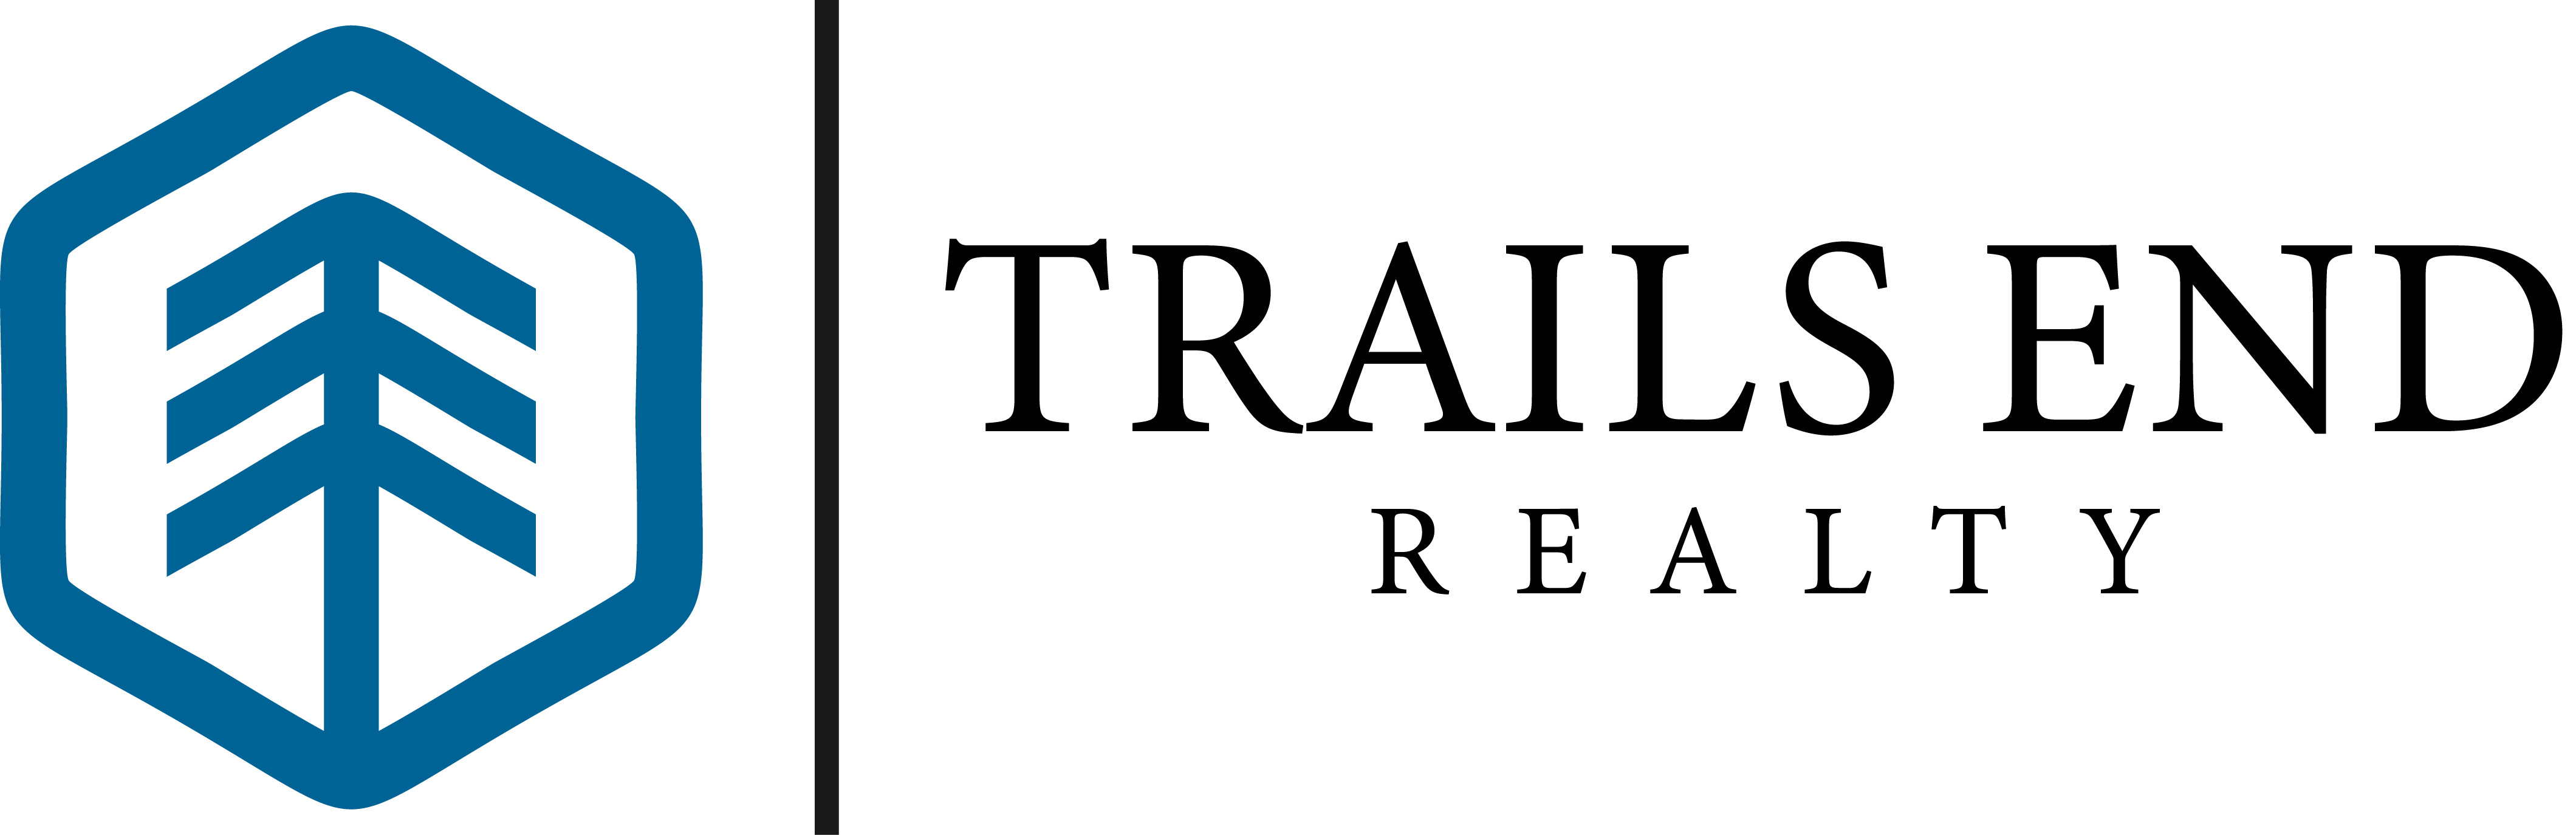 Trails End Realty